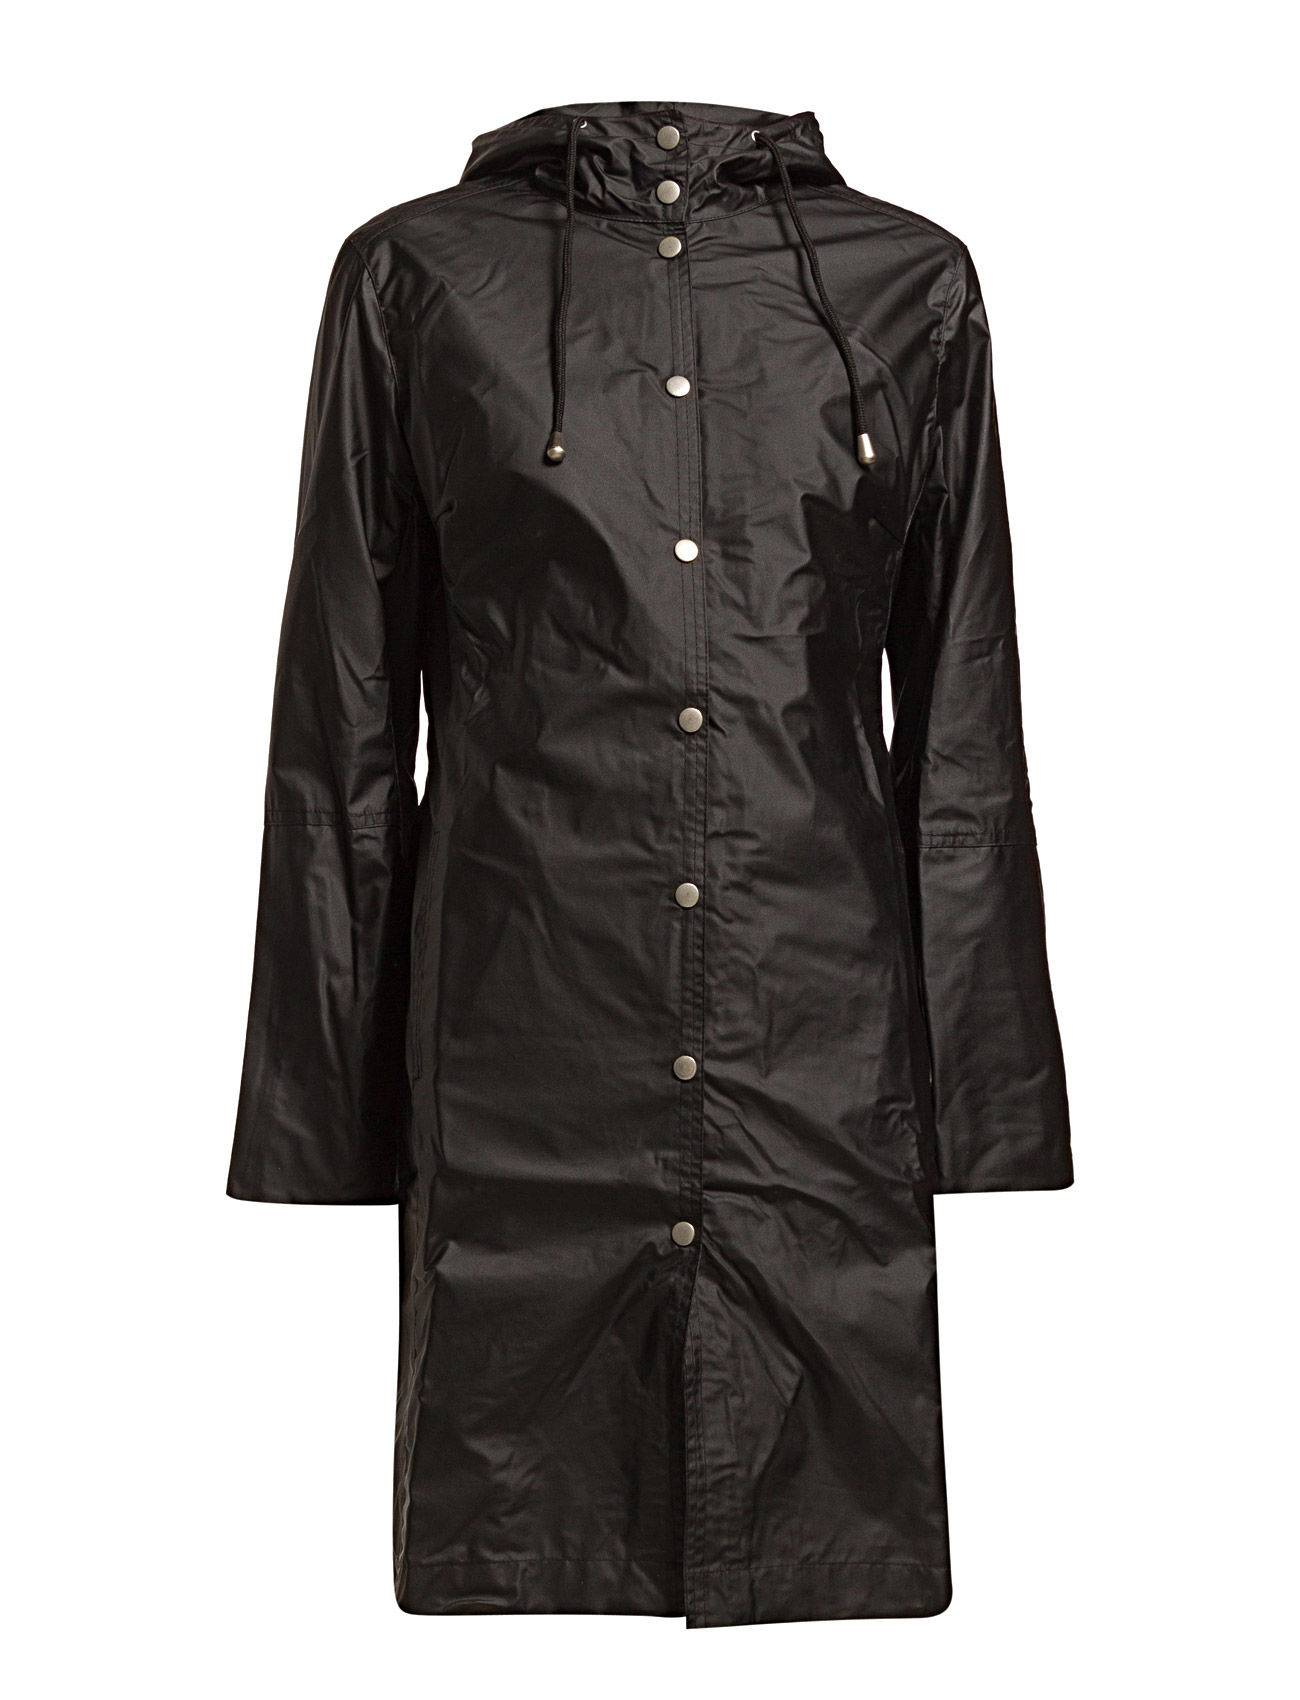 Ilse Jacobsen Classic Raincoat With Matching Hat.